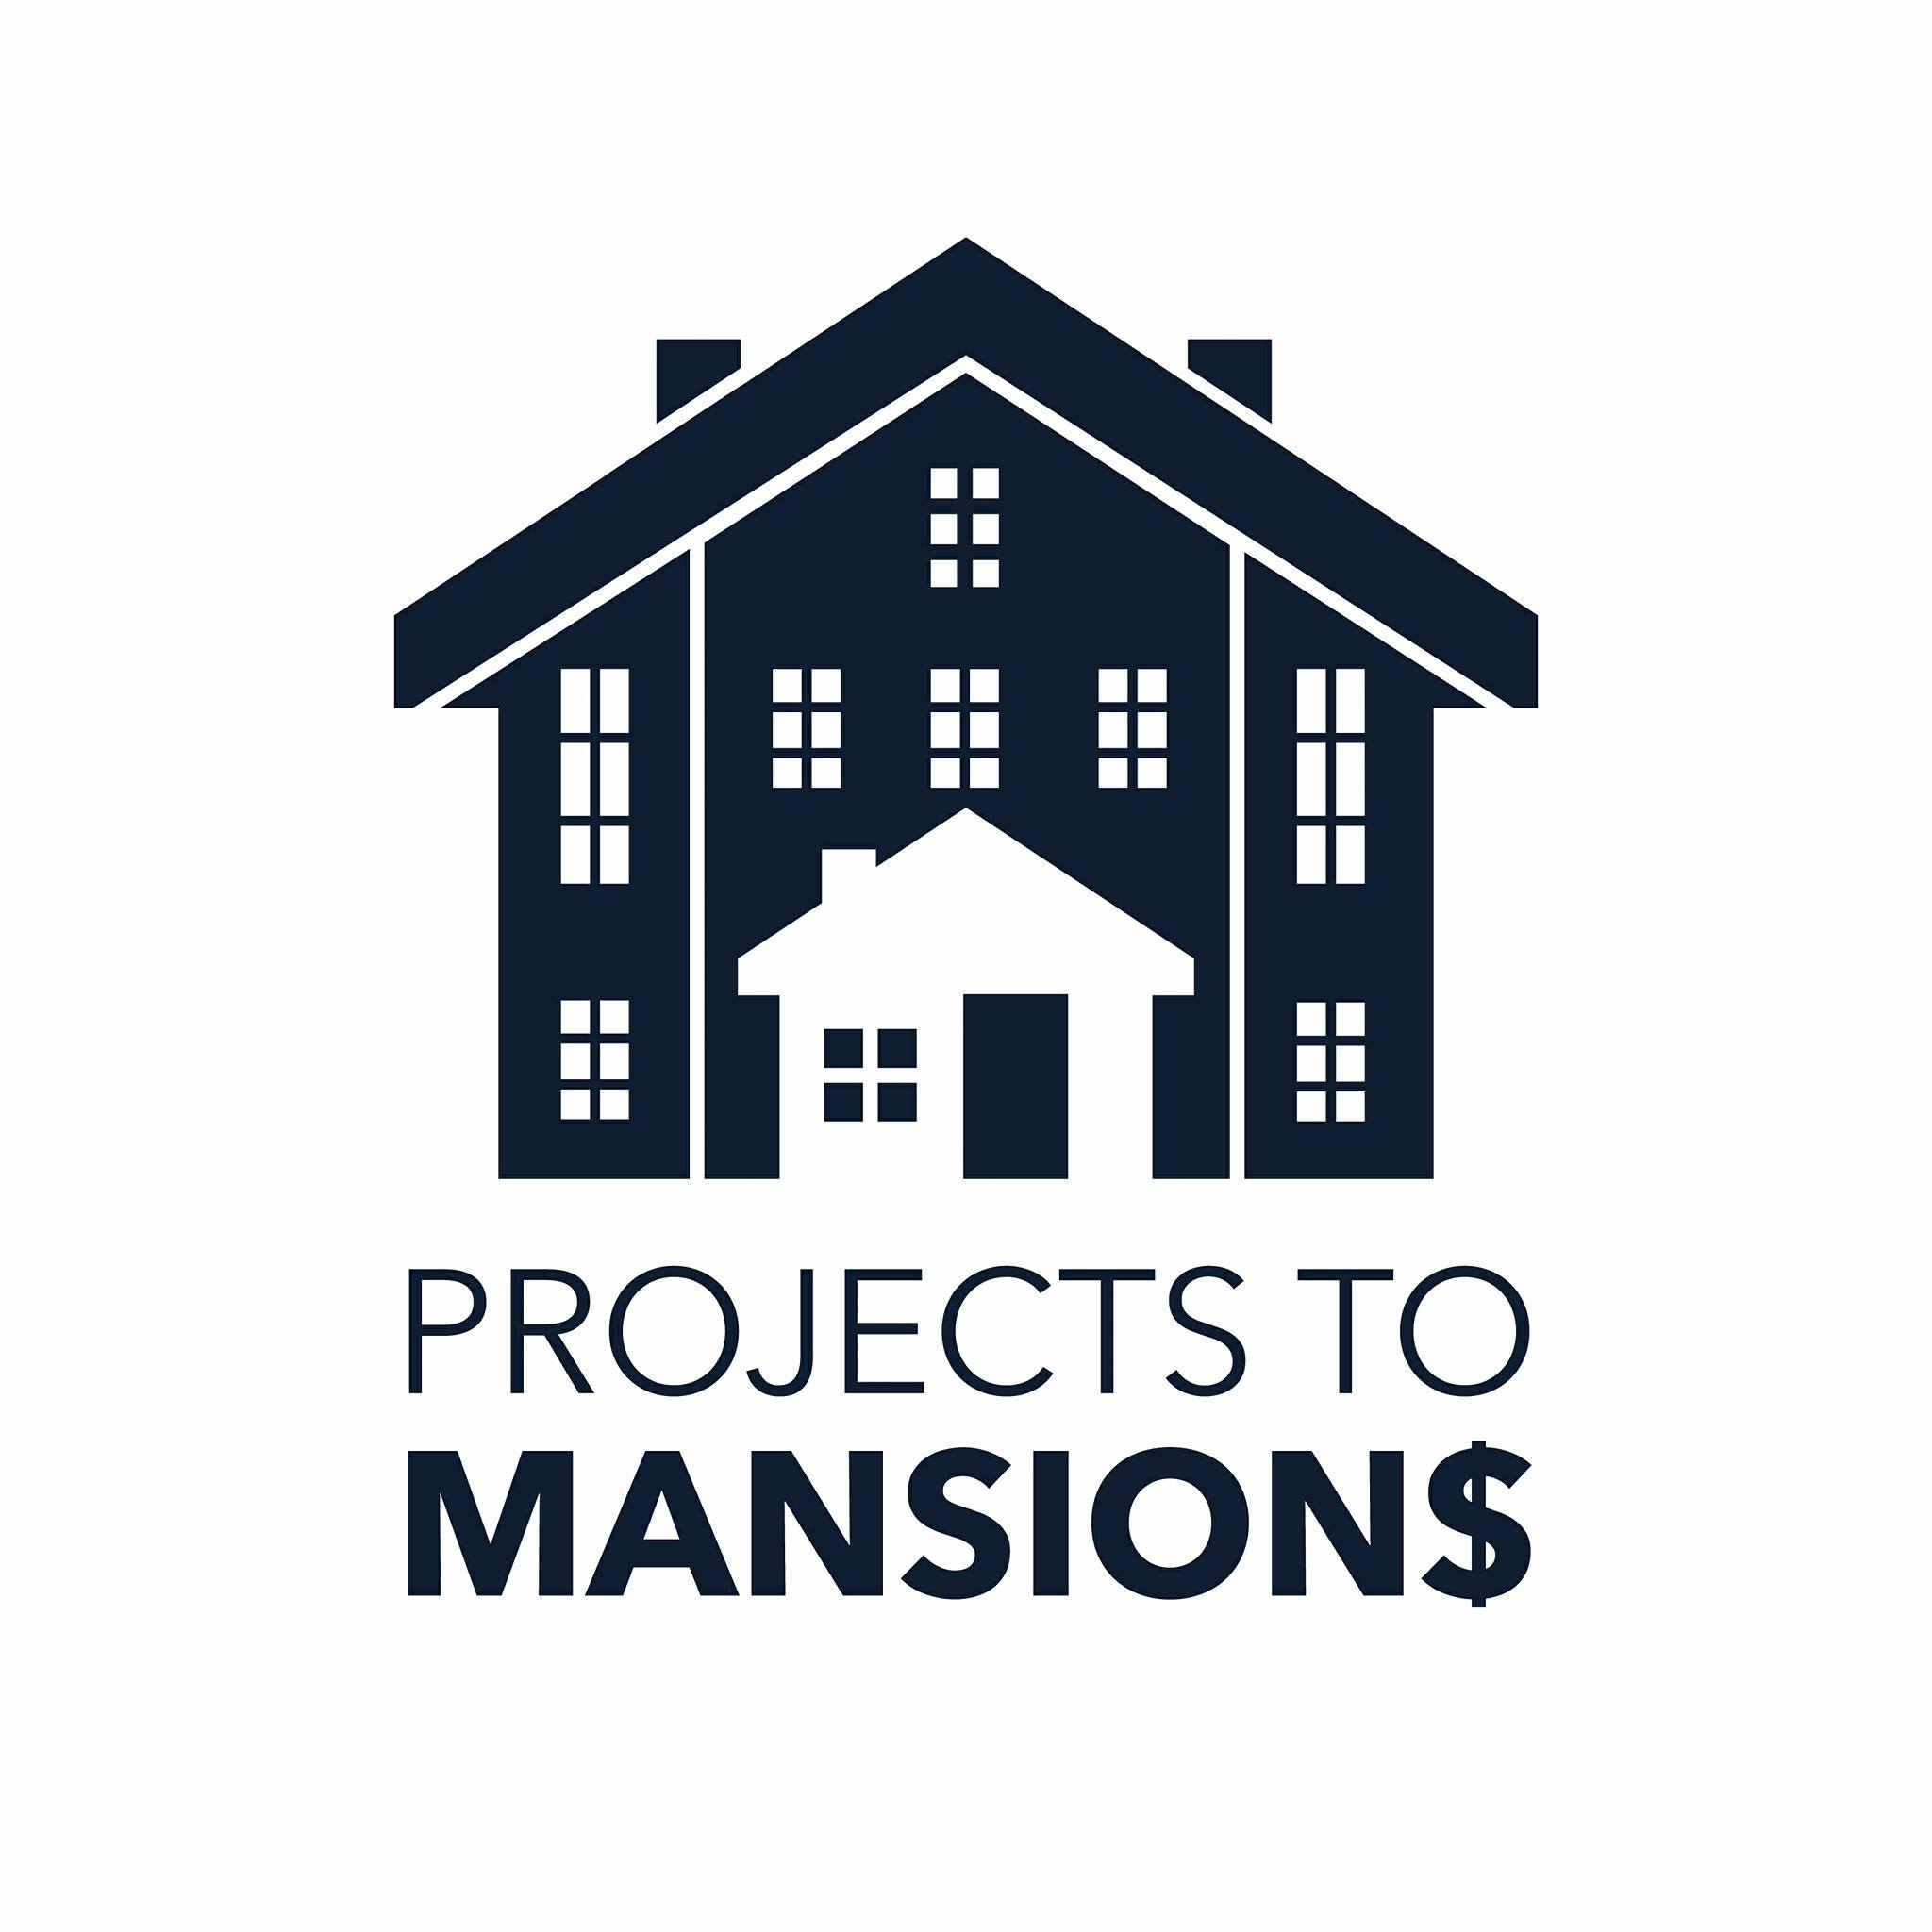 Projects To Mansions Image